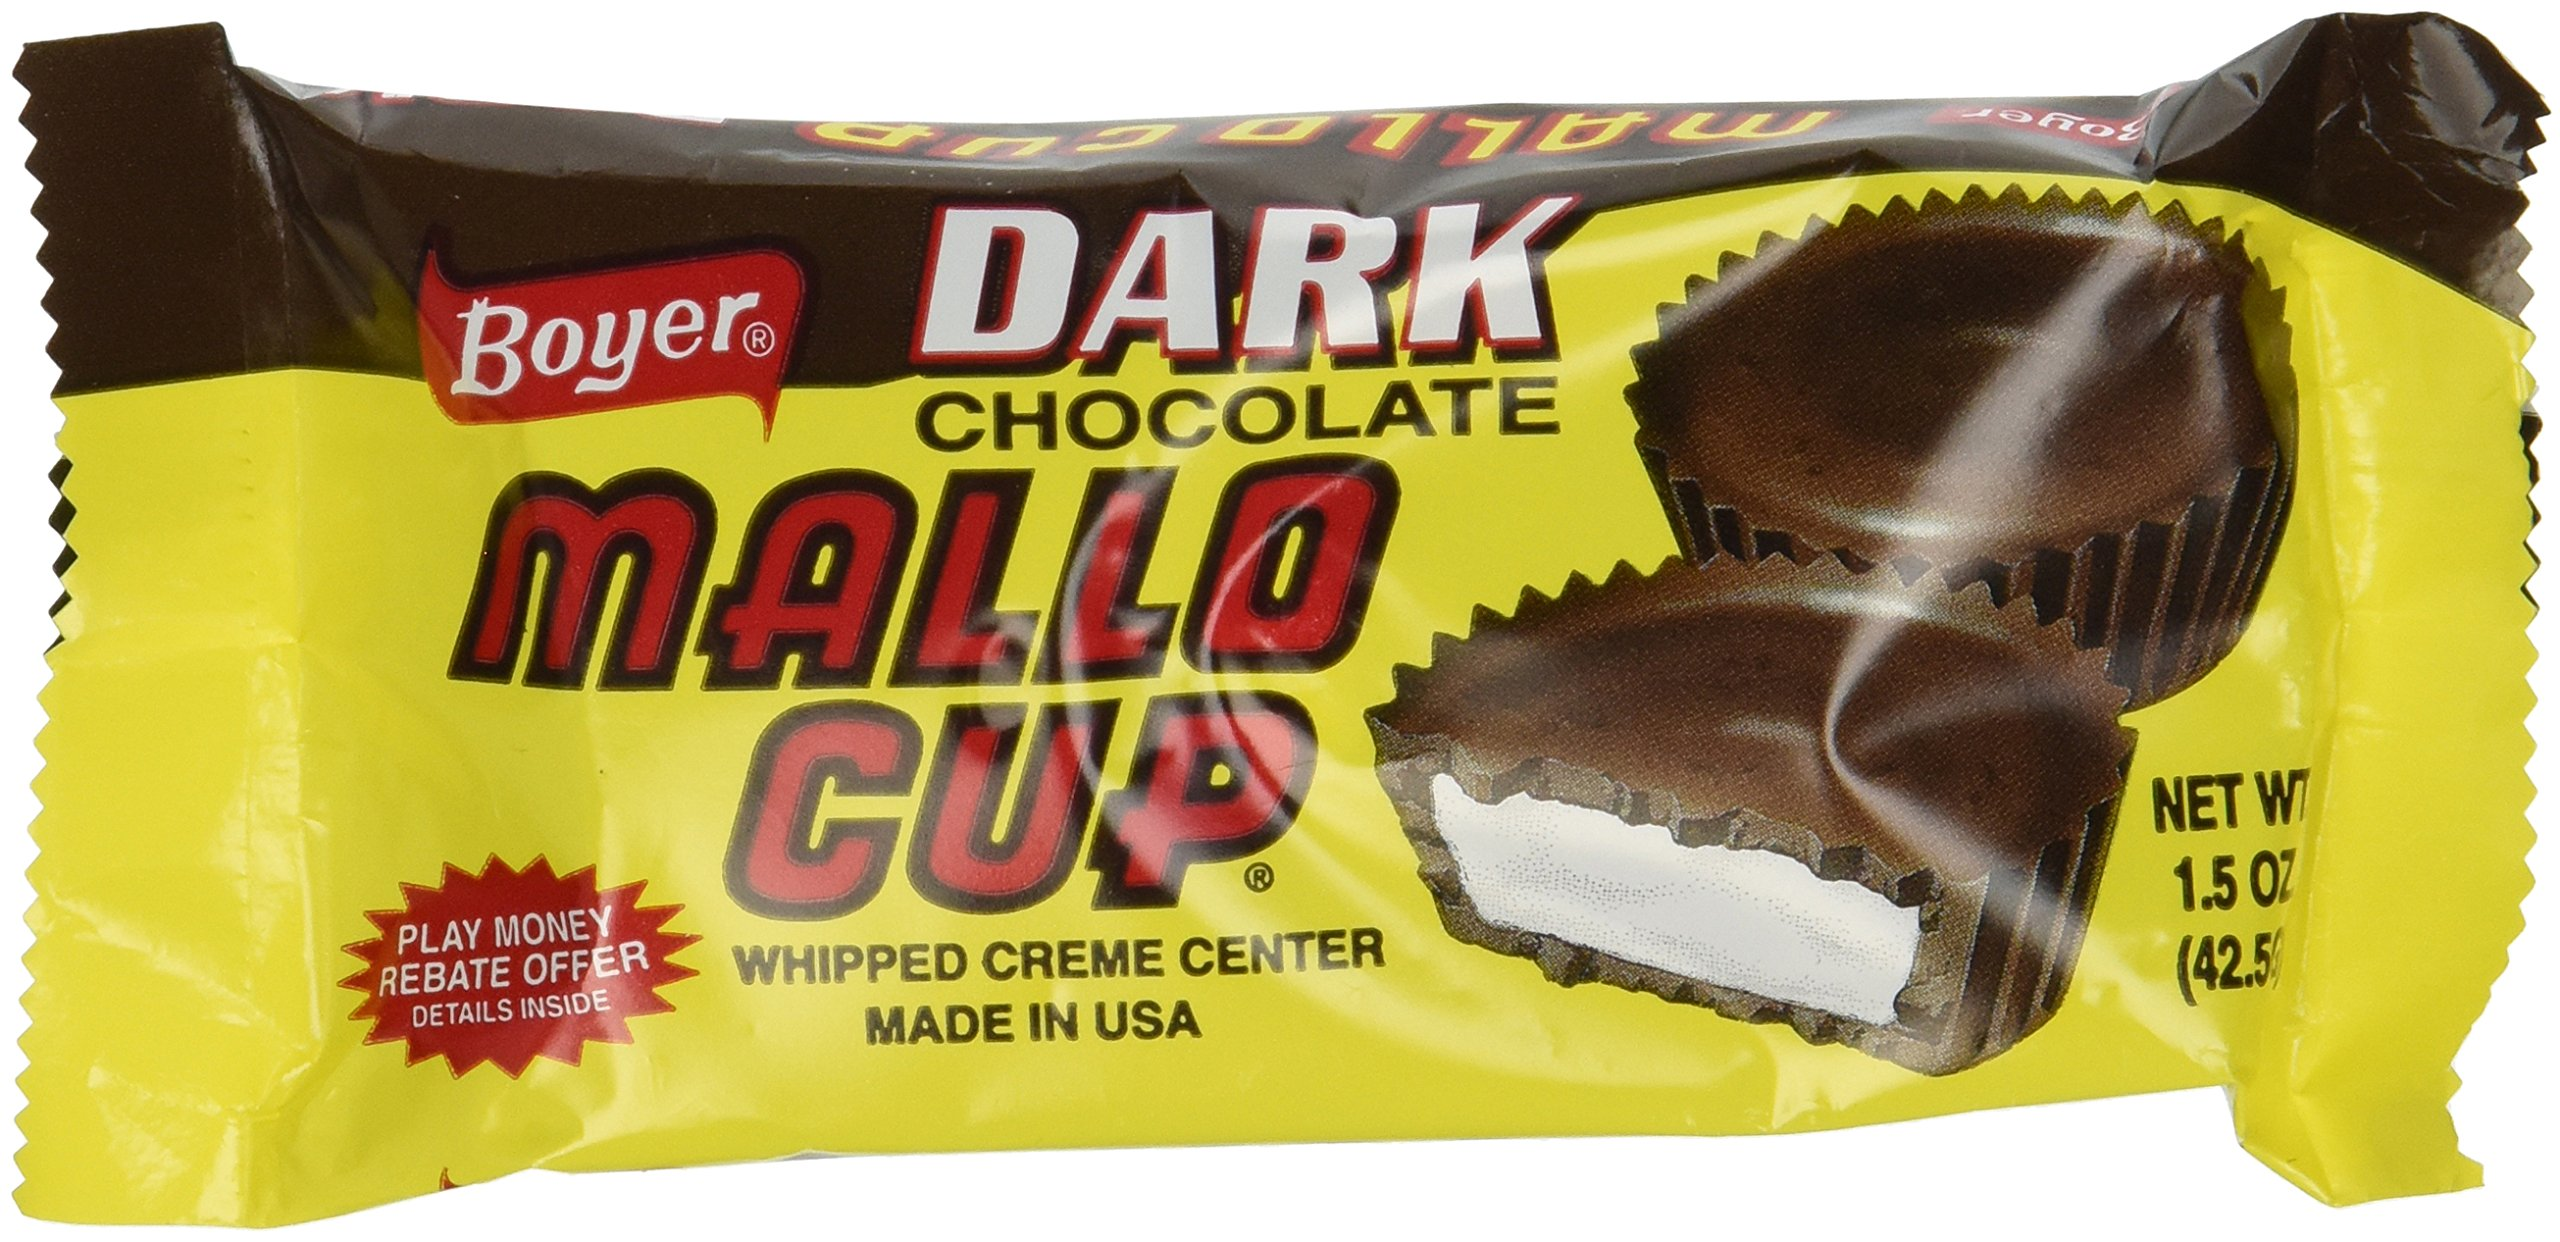 Amazoncom Boyer Mallo Cup 24 Packs Chocolate Assortments And